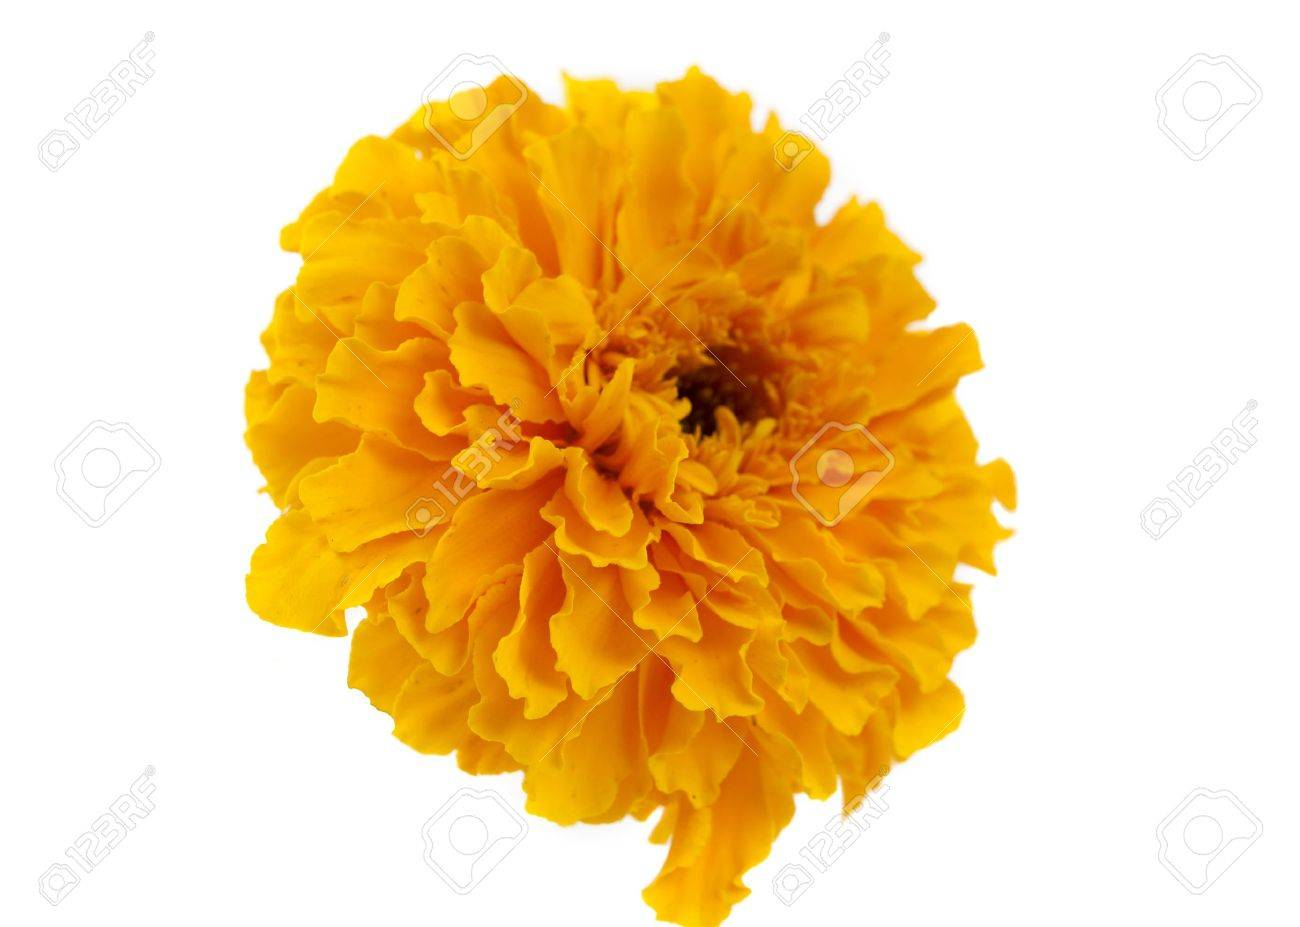 Yellow marigold flower isolated on white.